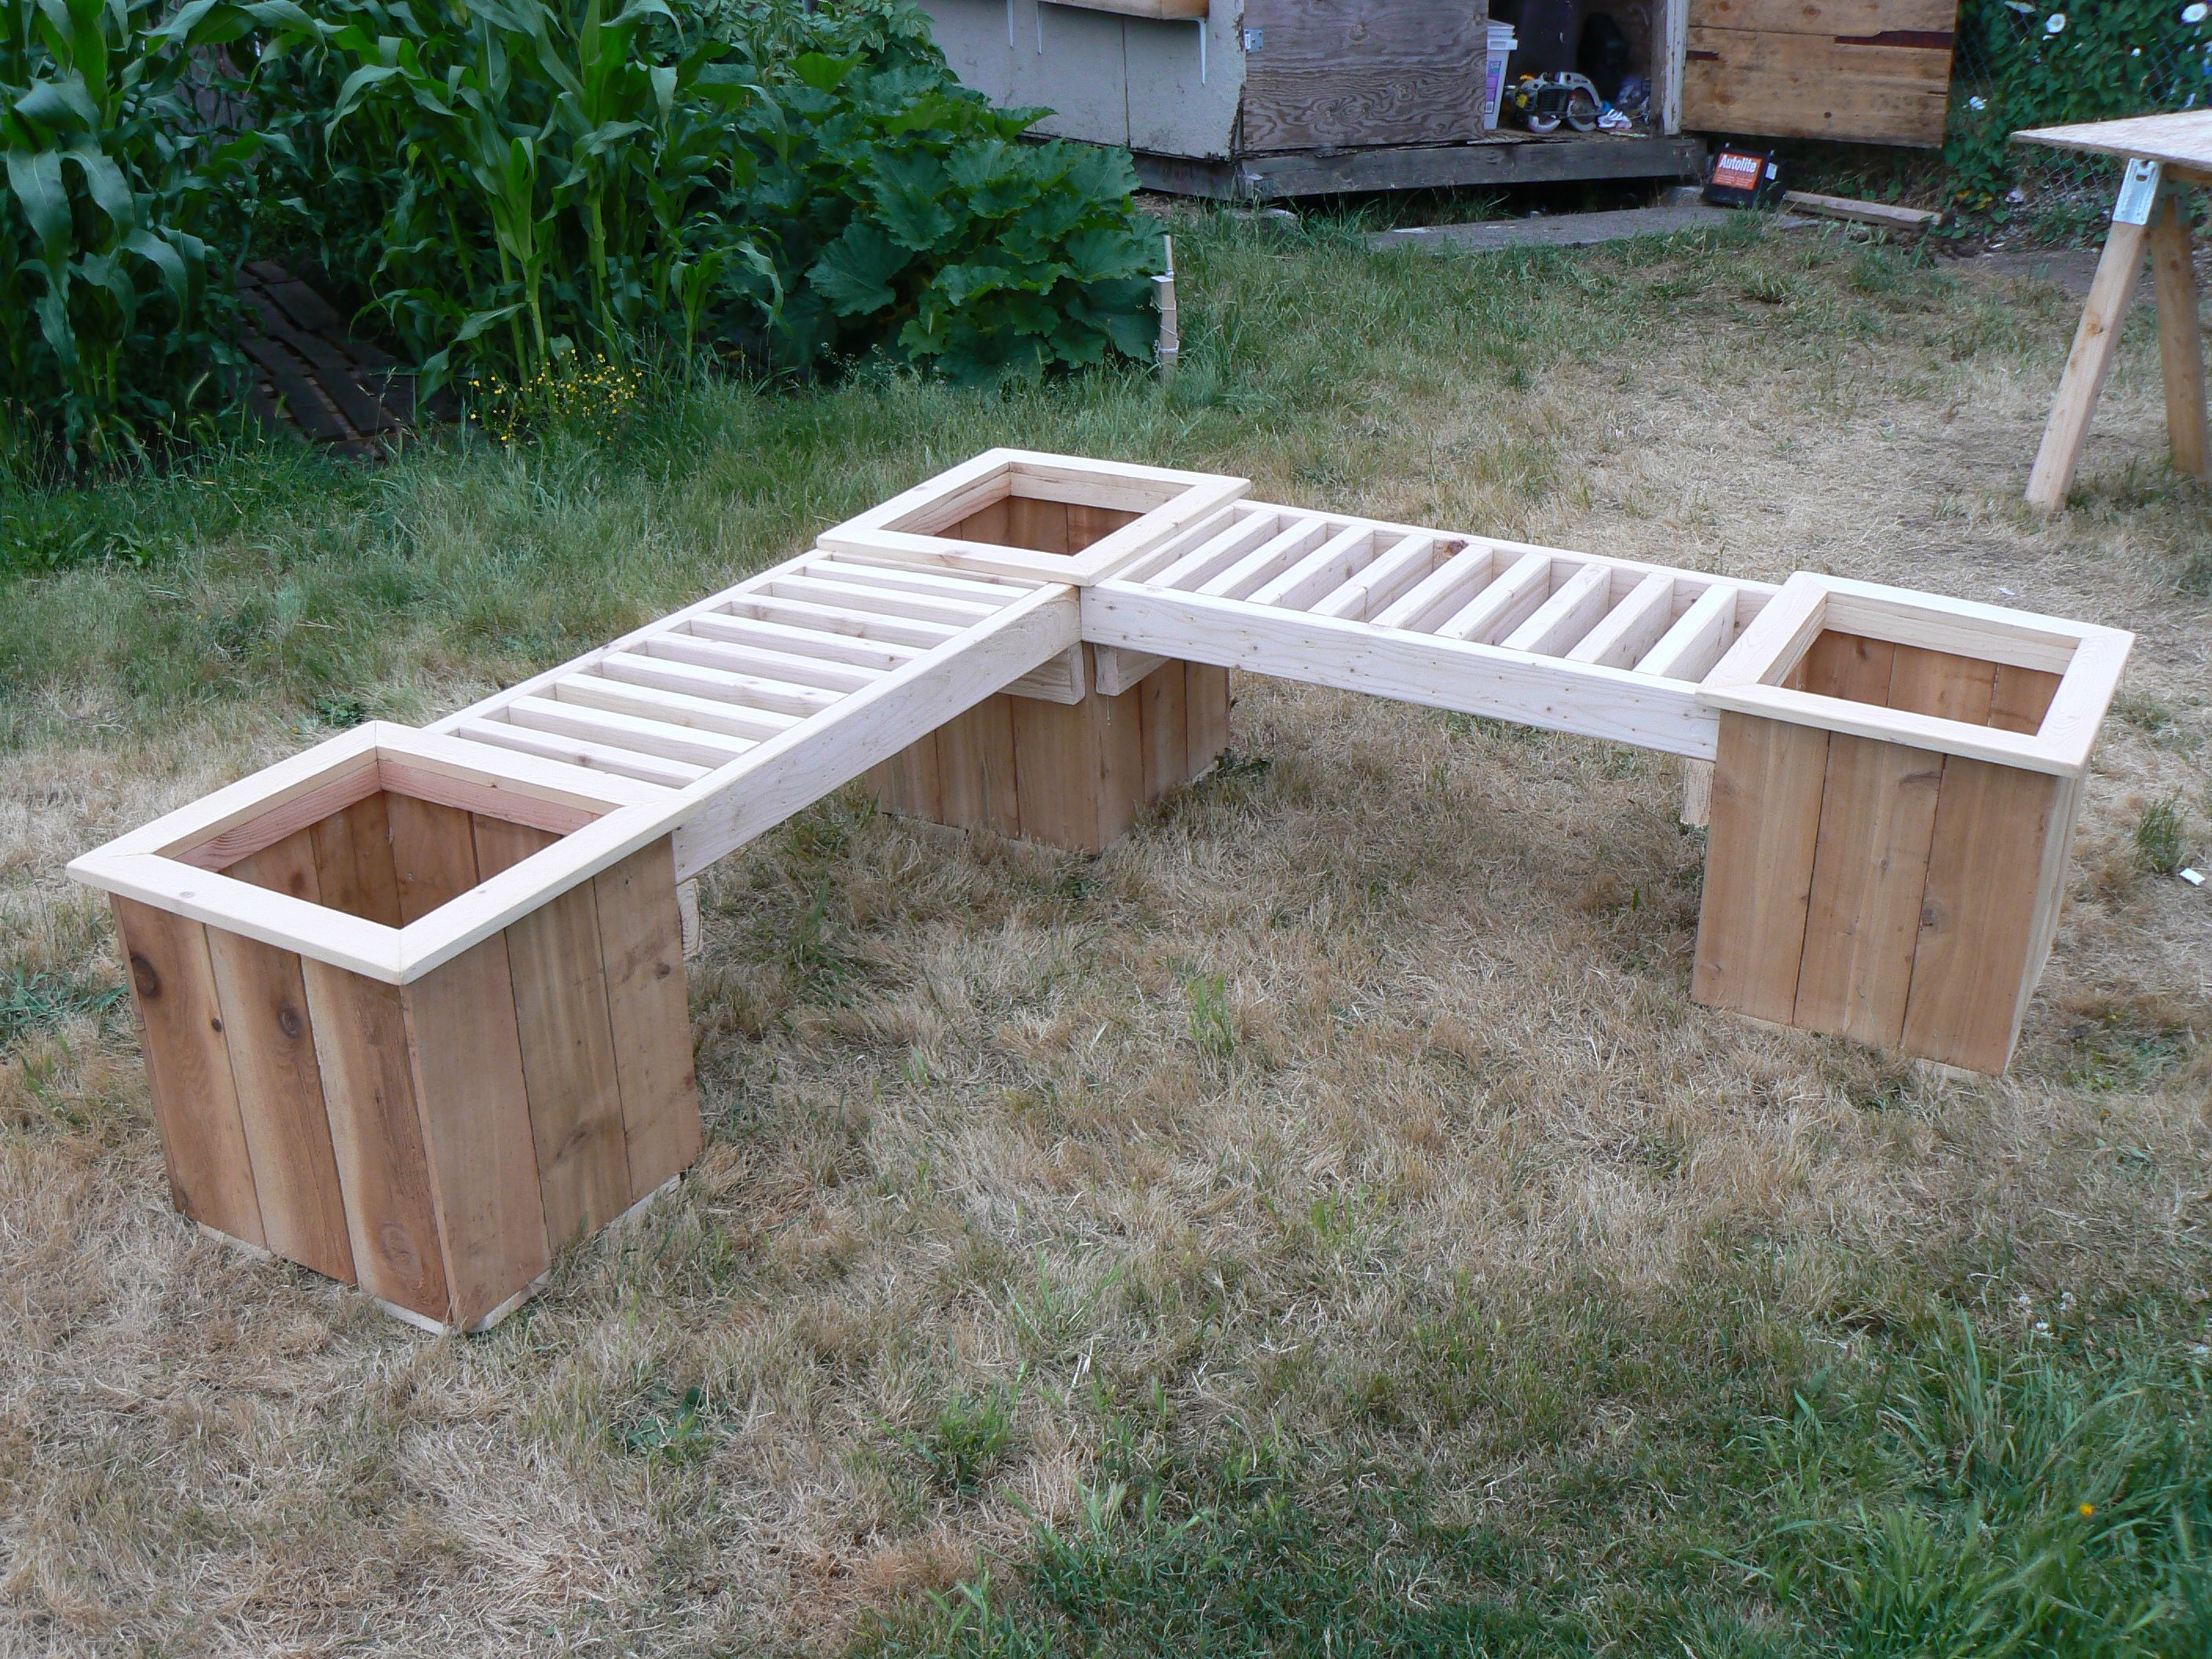 Pin By Michelle Strahl On Cedar Planter Boxes Small Garden Bench